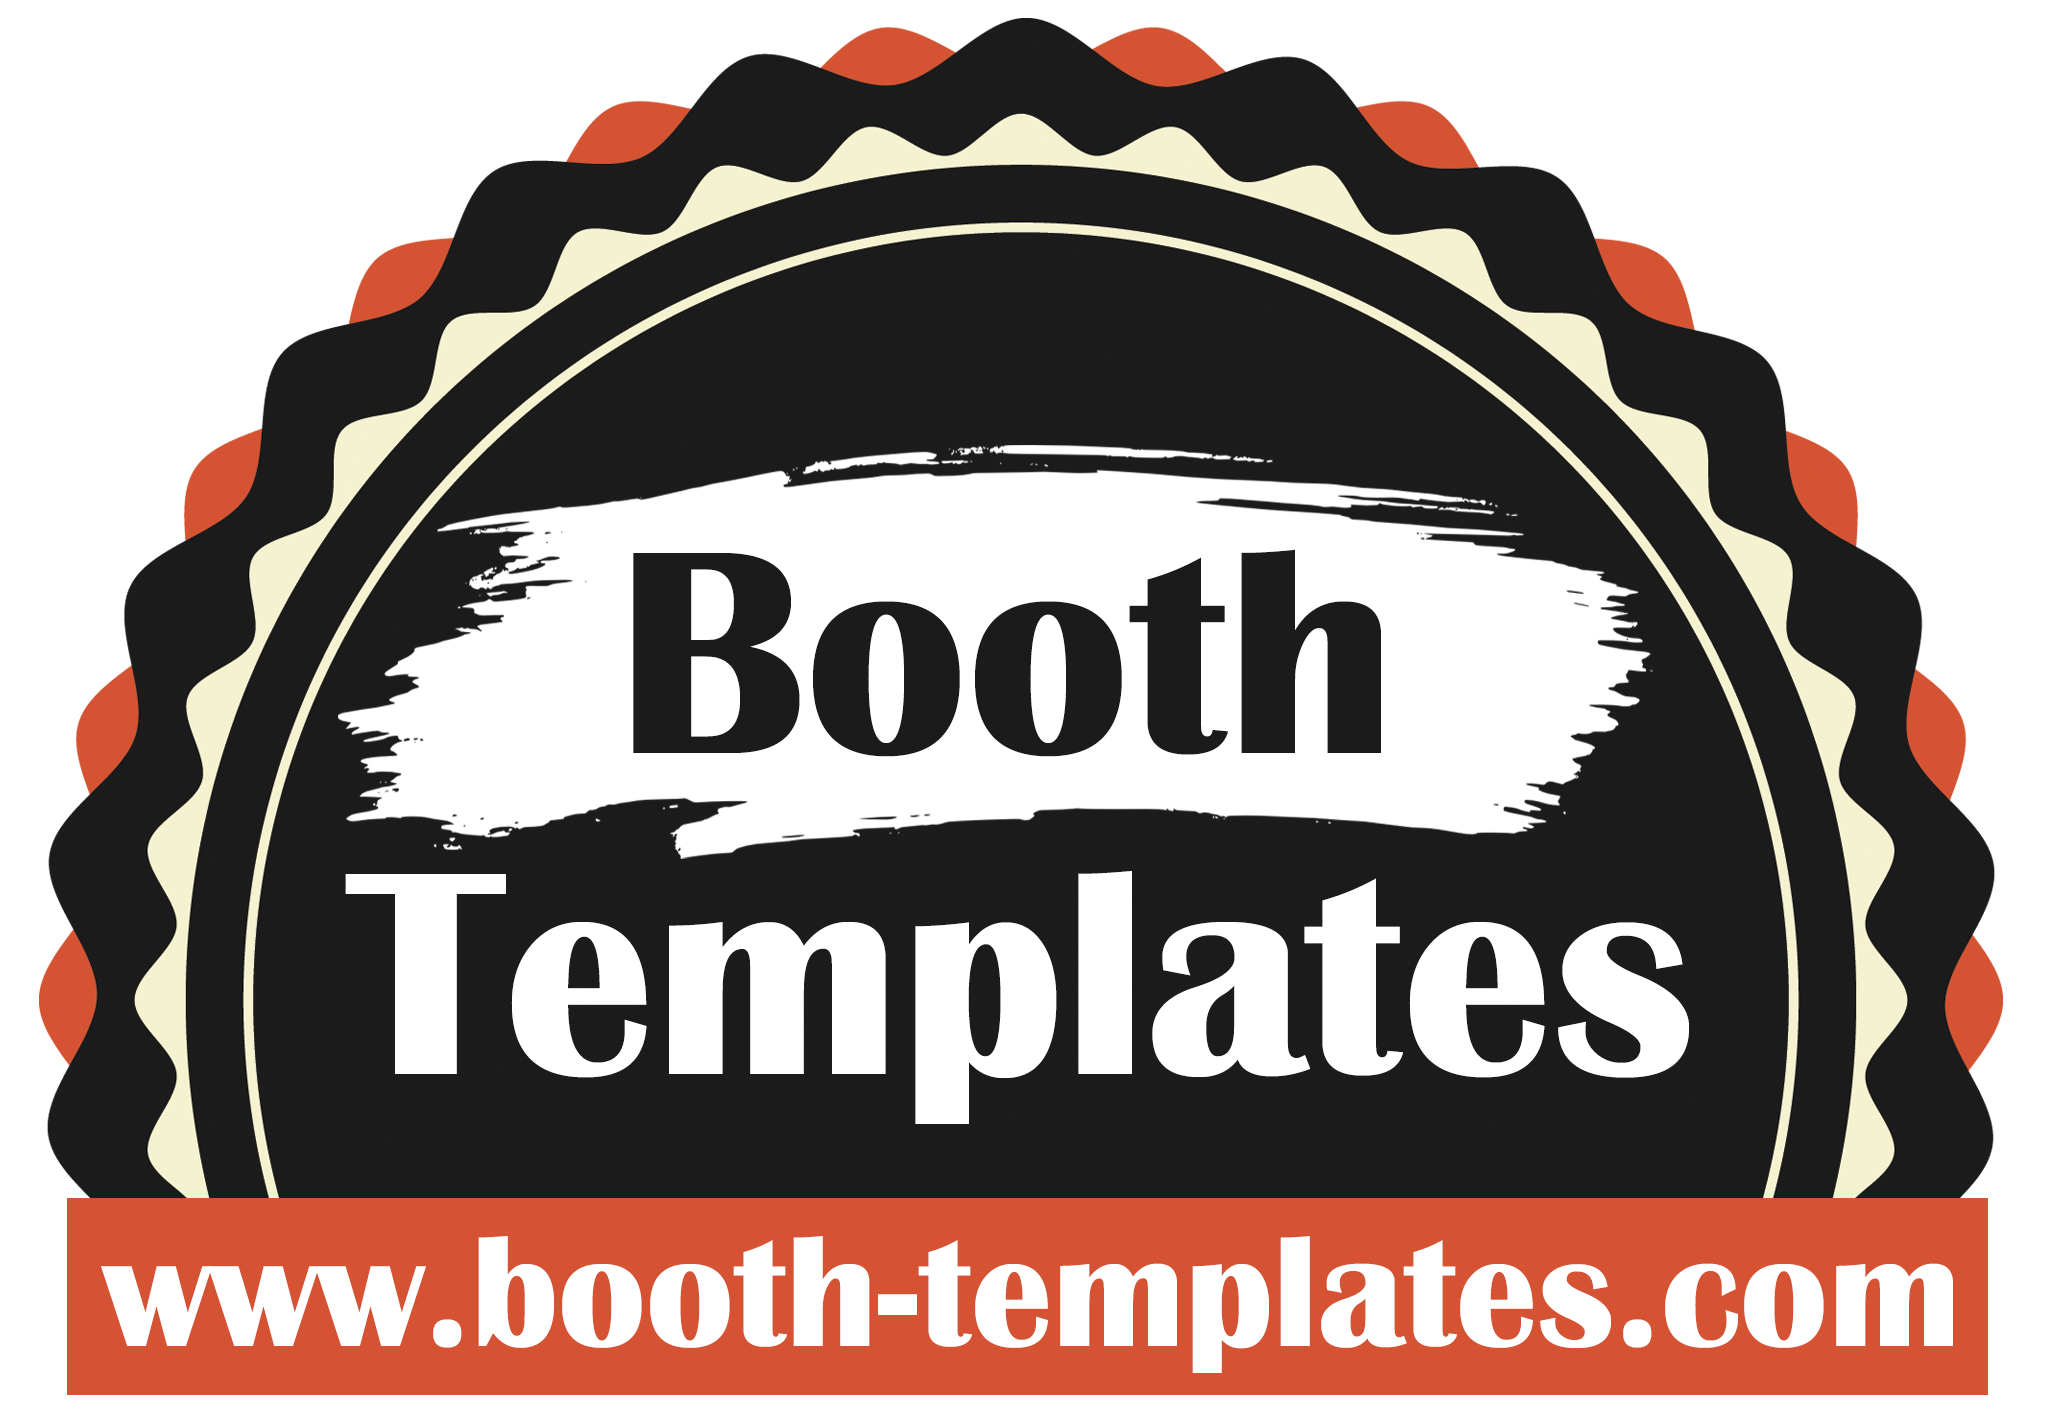 Booth-Templates